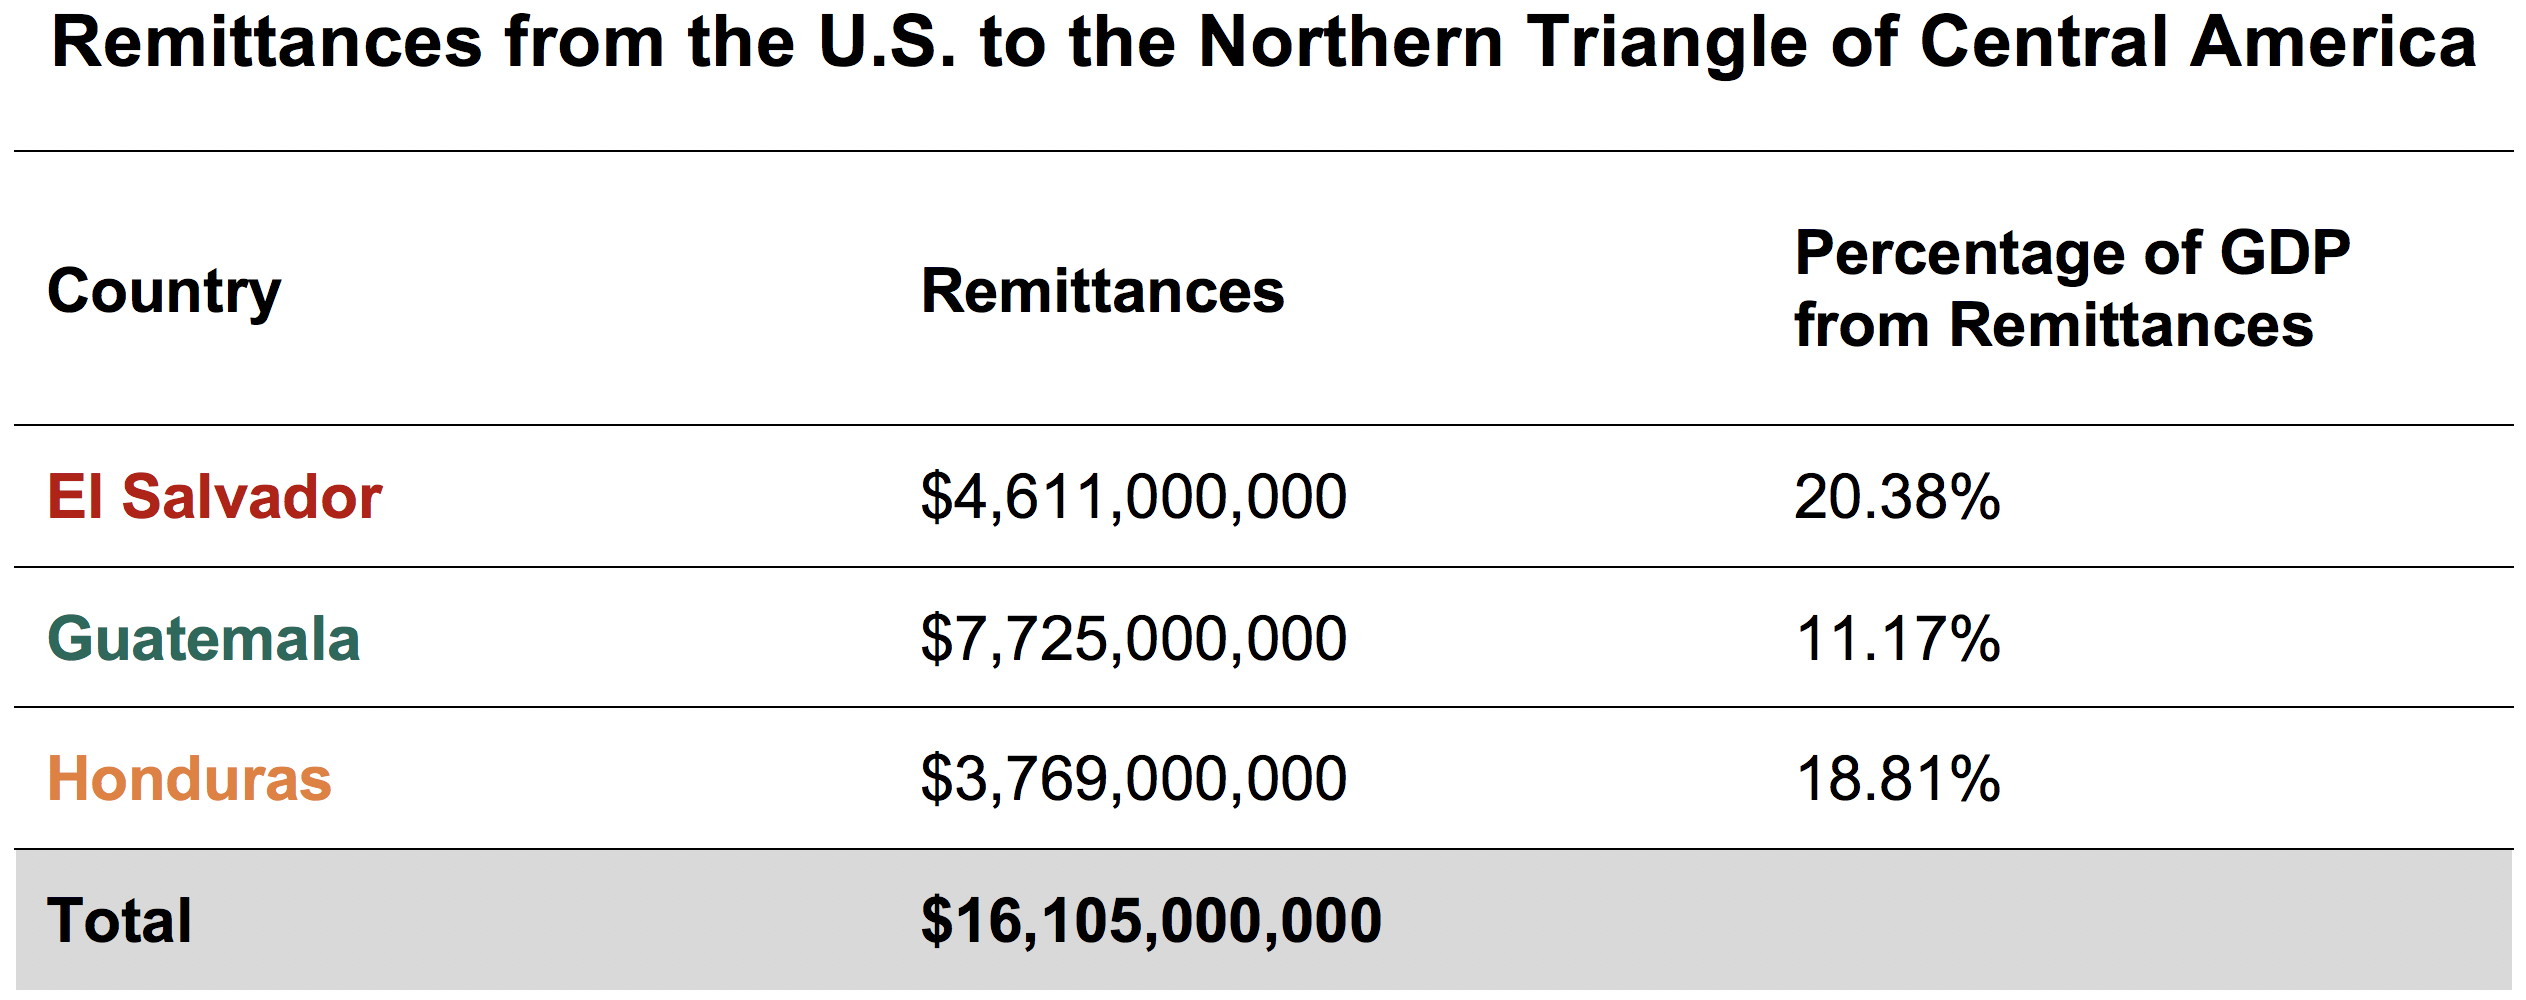 Table: Remittances from the U.S. to the Northern Triangle of Central America